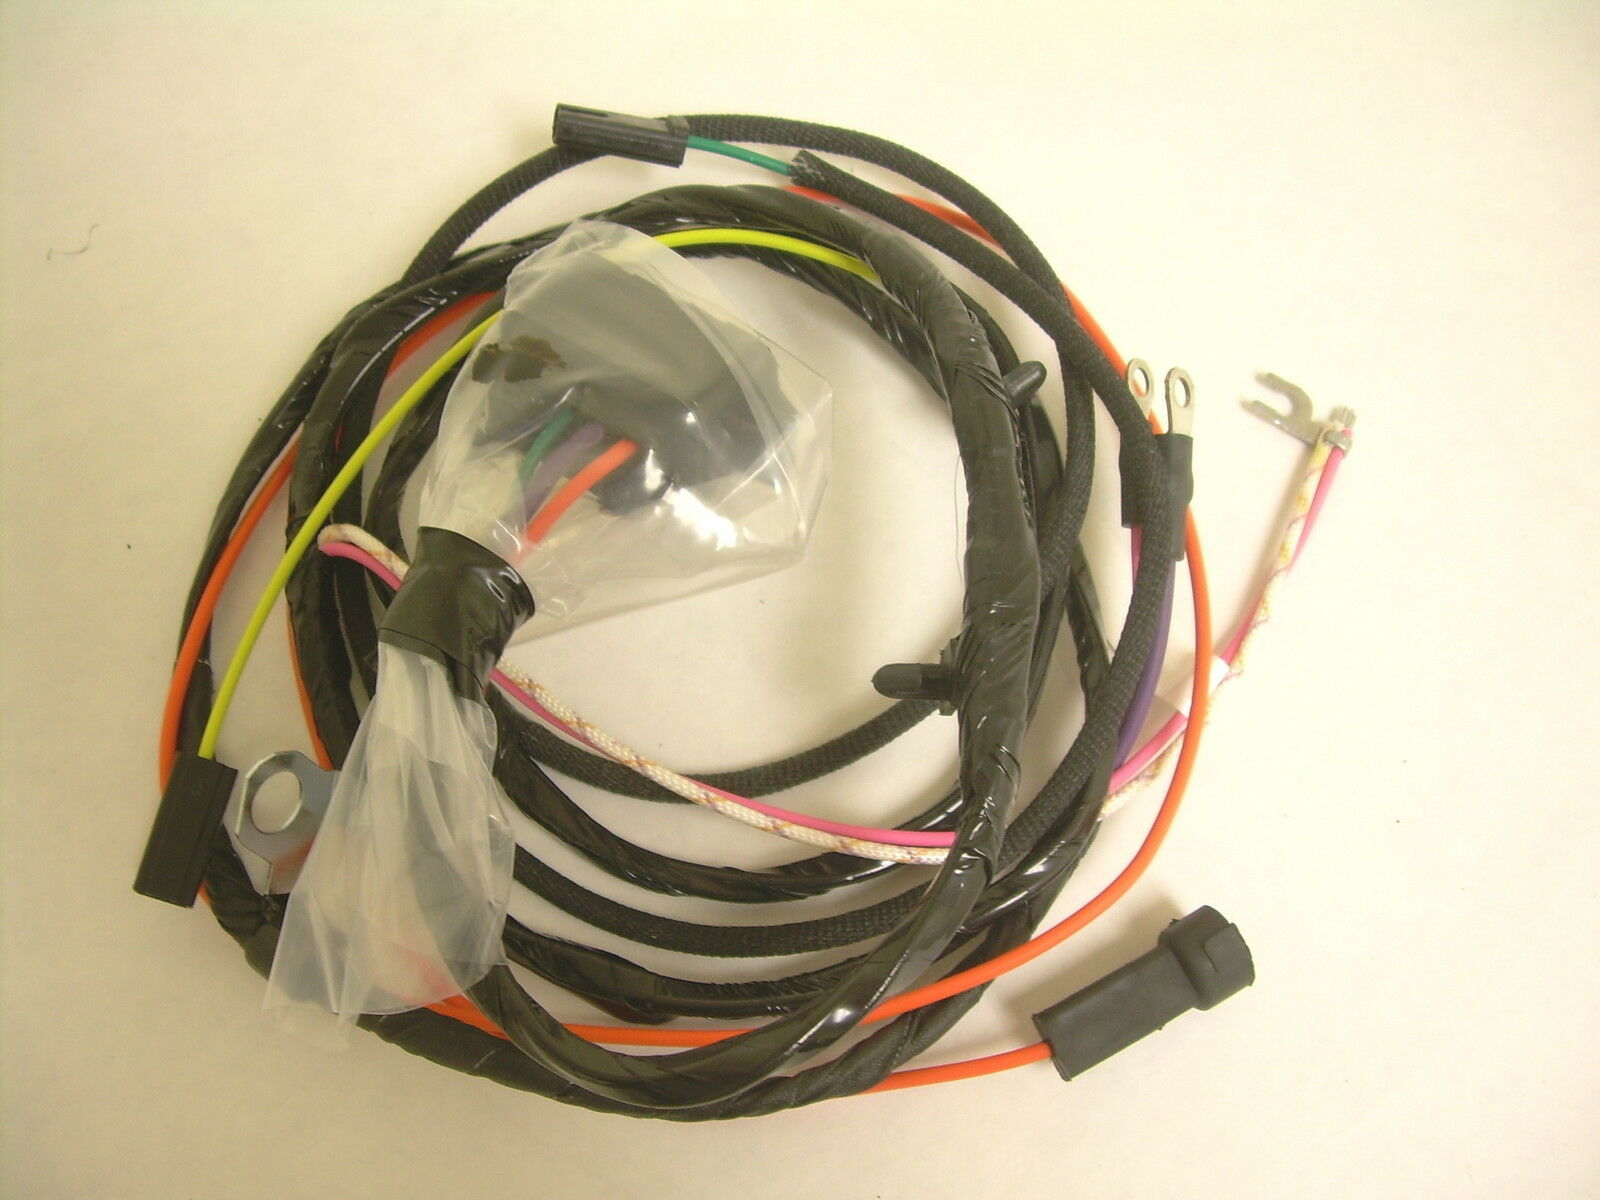 1965 1966 Impala Belair Biscayne Engine Wiring Harness 283 327 with Gauges  SS 1 of 4Only 3 available ...